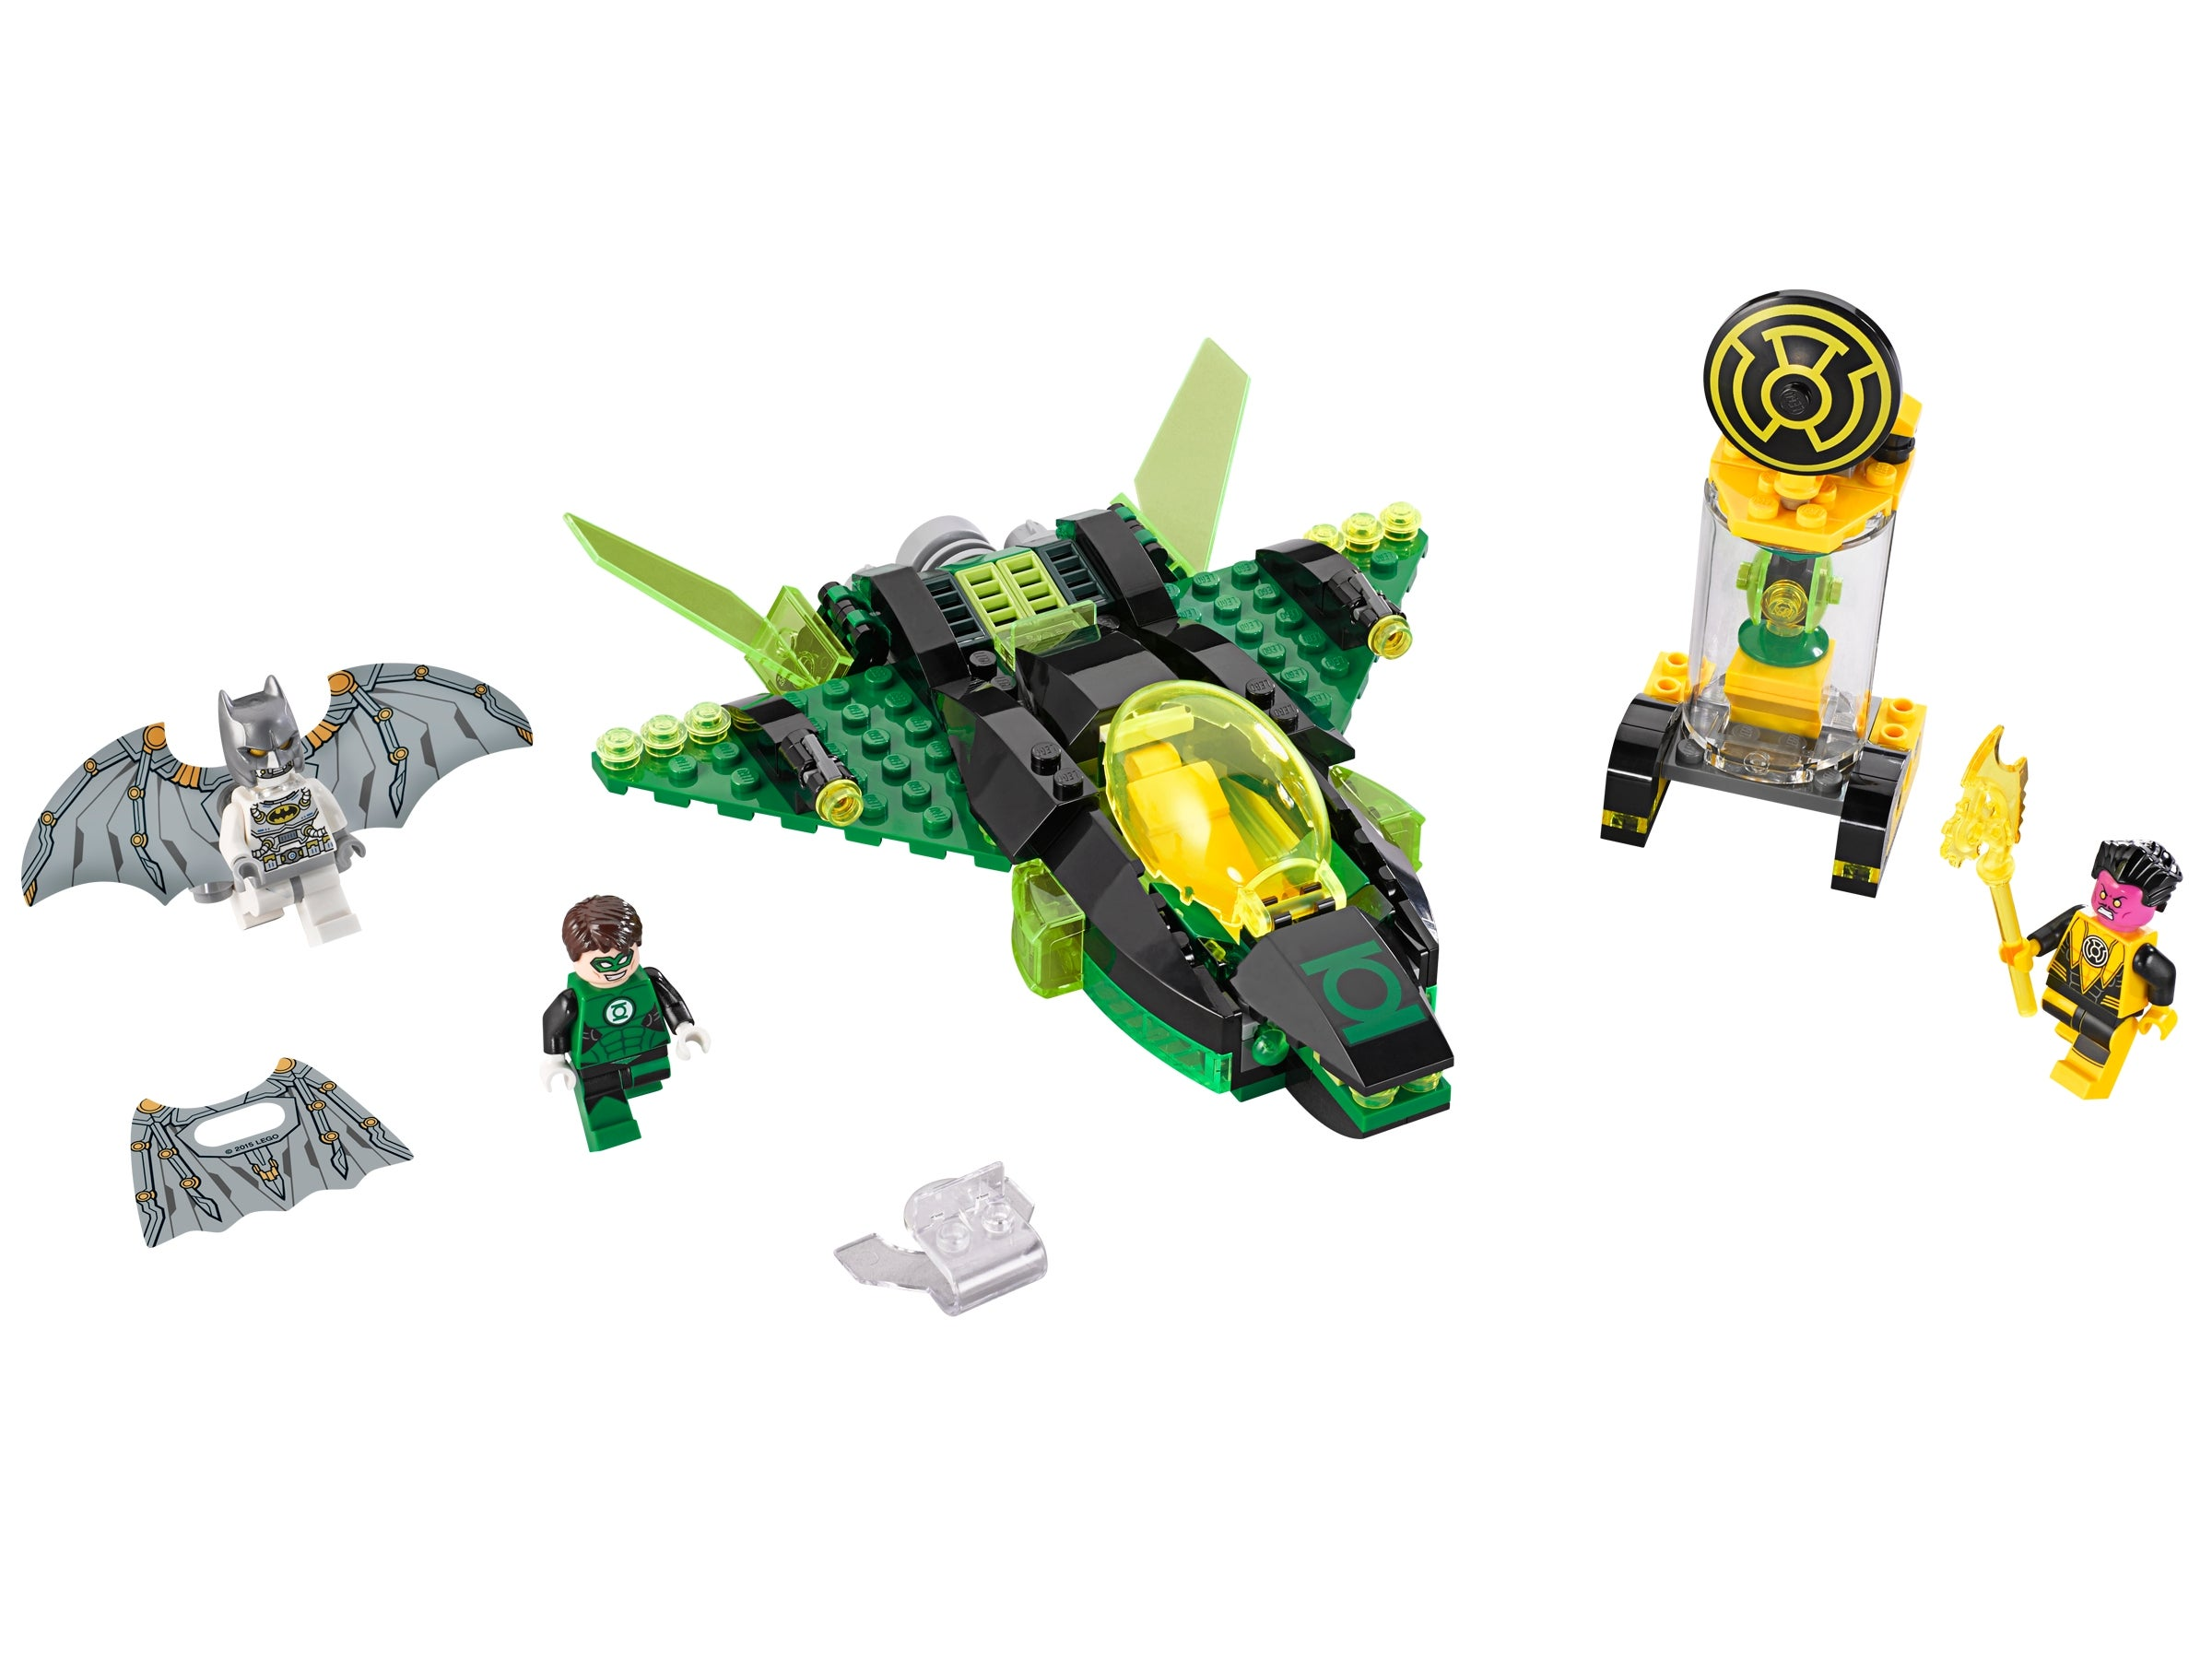 Lego Green Lantern 76025 White Hands Super Heroes Justice League Minifigure